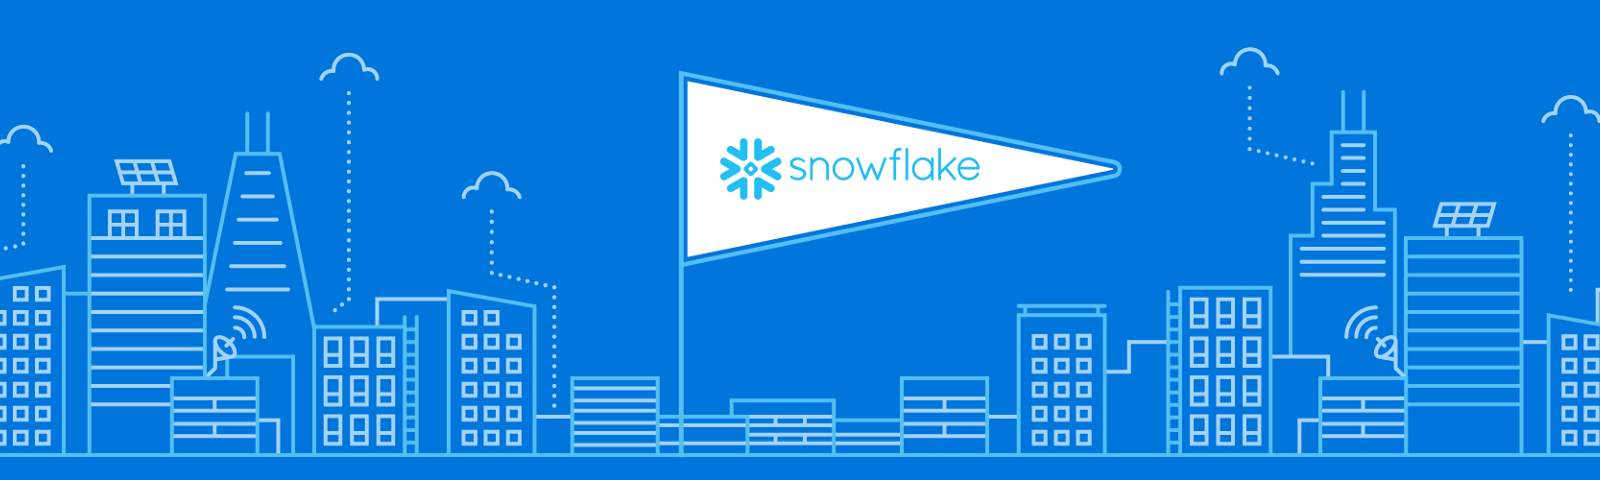 Getting Started with Snowflake and Matillion - Pandera Labs